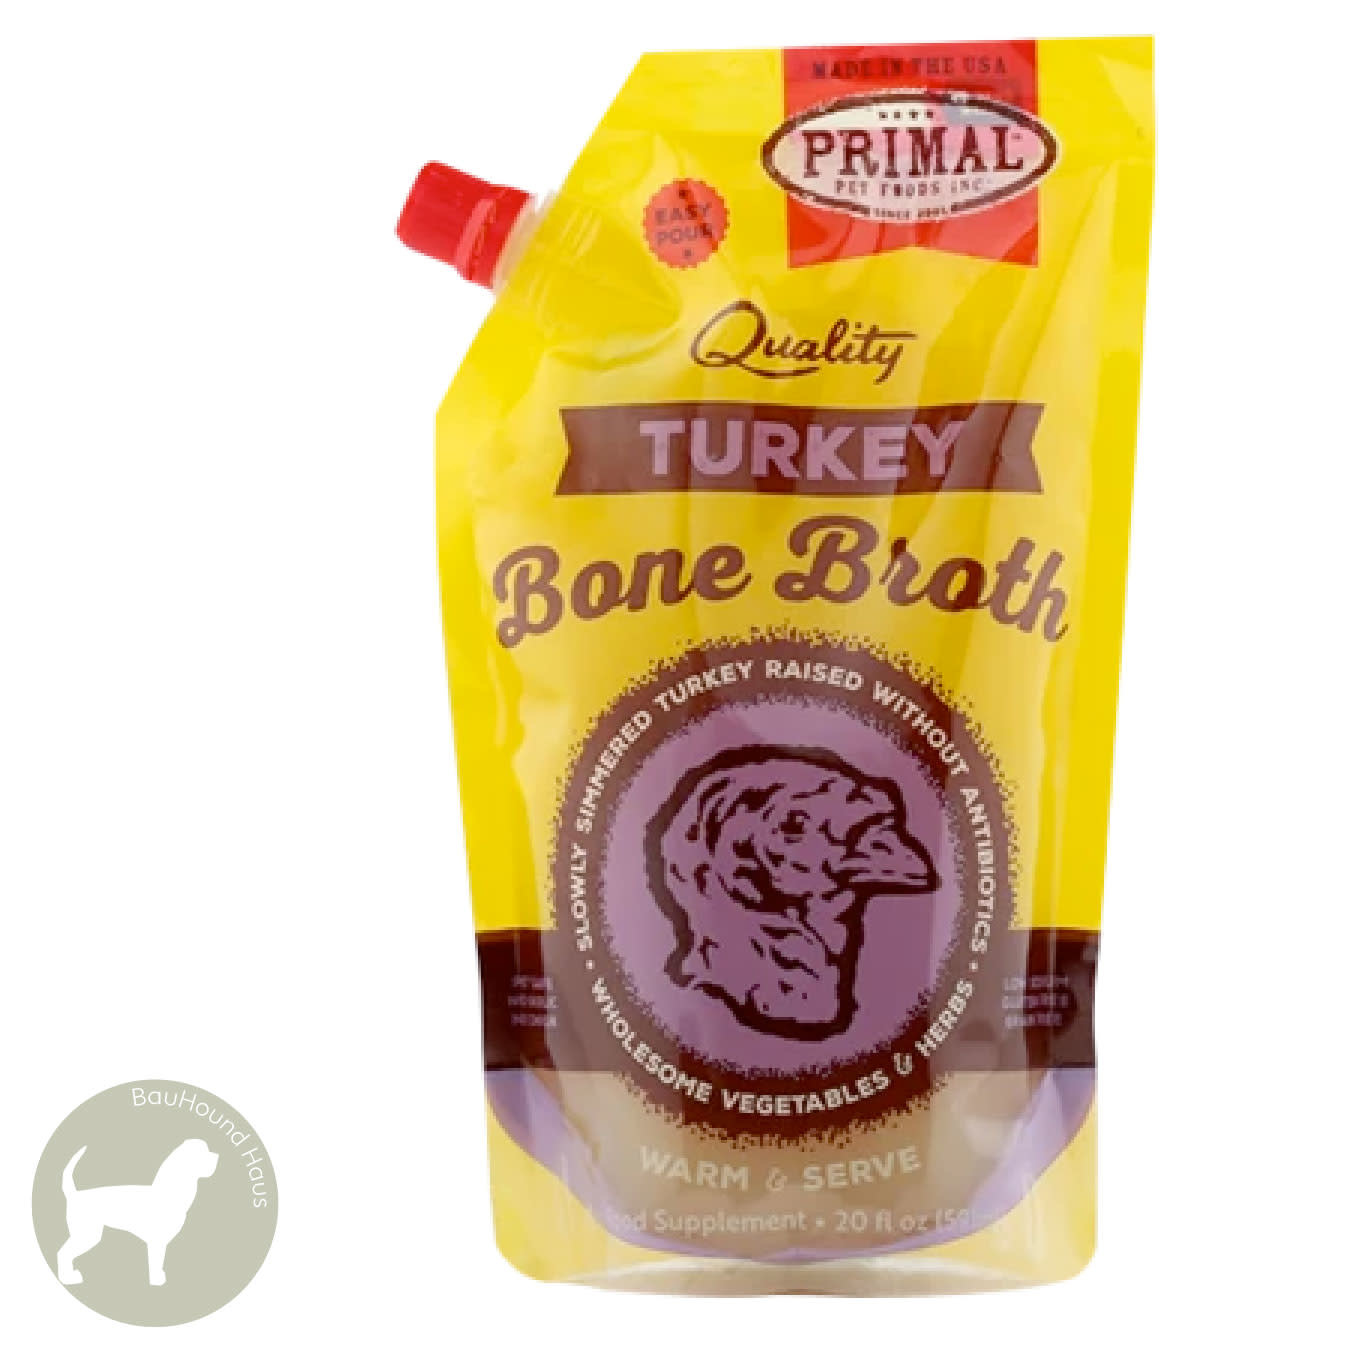 Primal Pet Foods Primal Bone Broth Turkey, 591ml